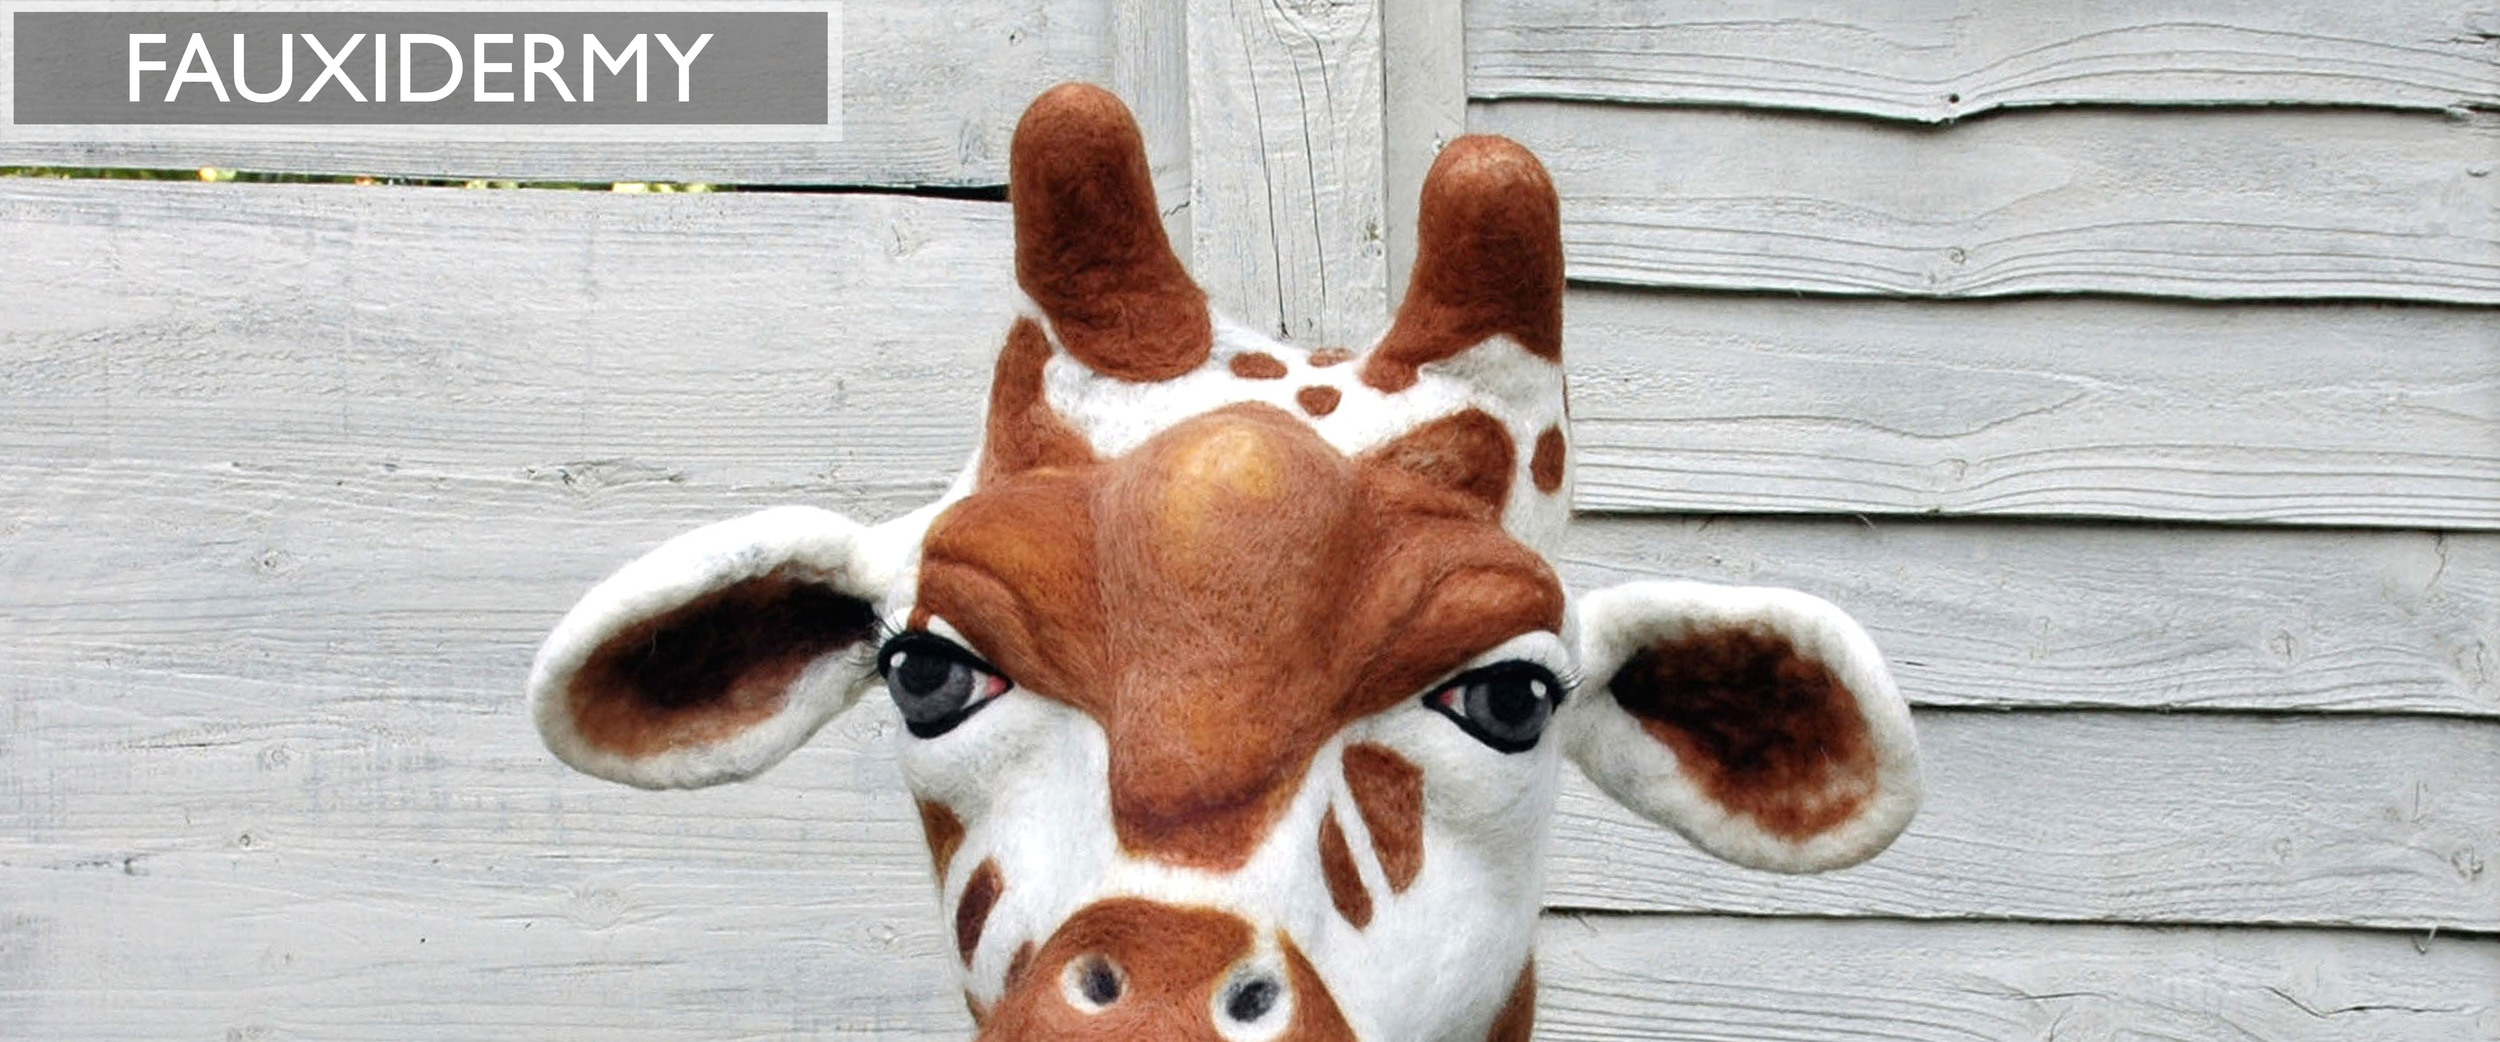 For the animal lovers out there.... faux animal trophy heads to adorn your walls.